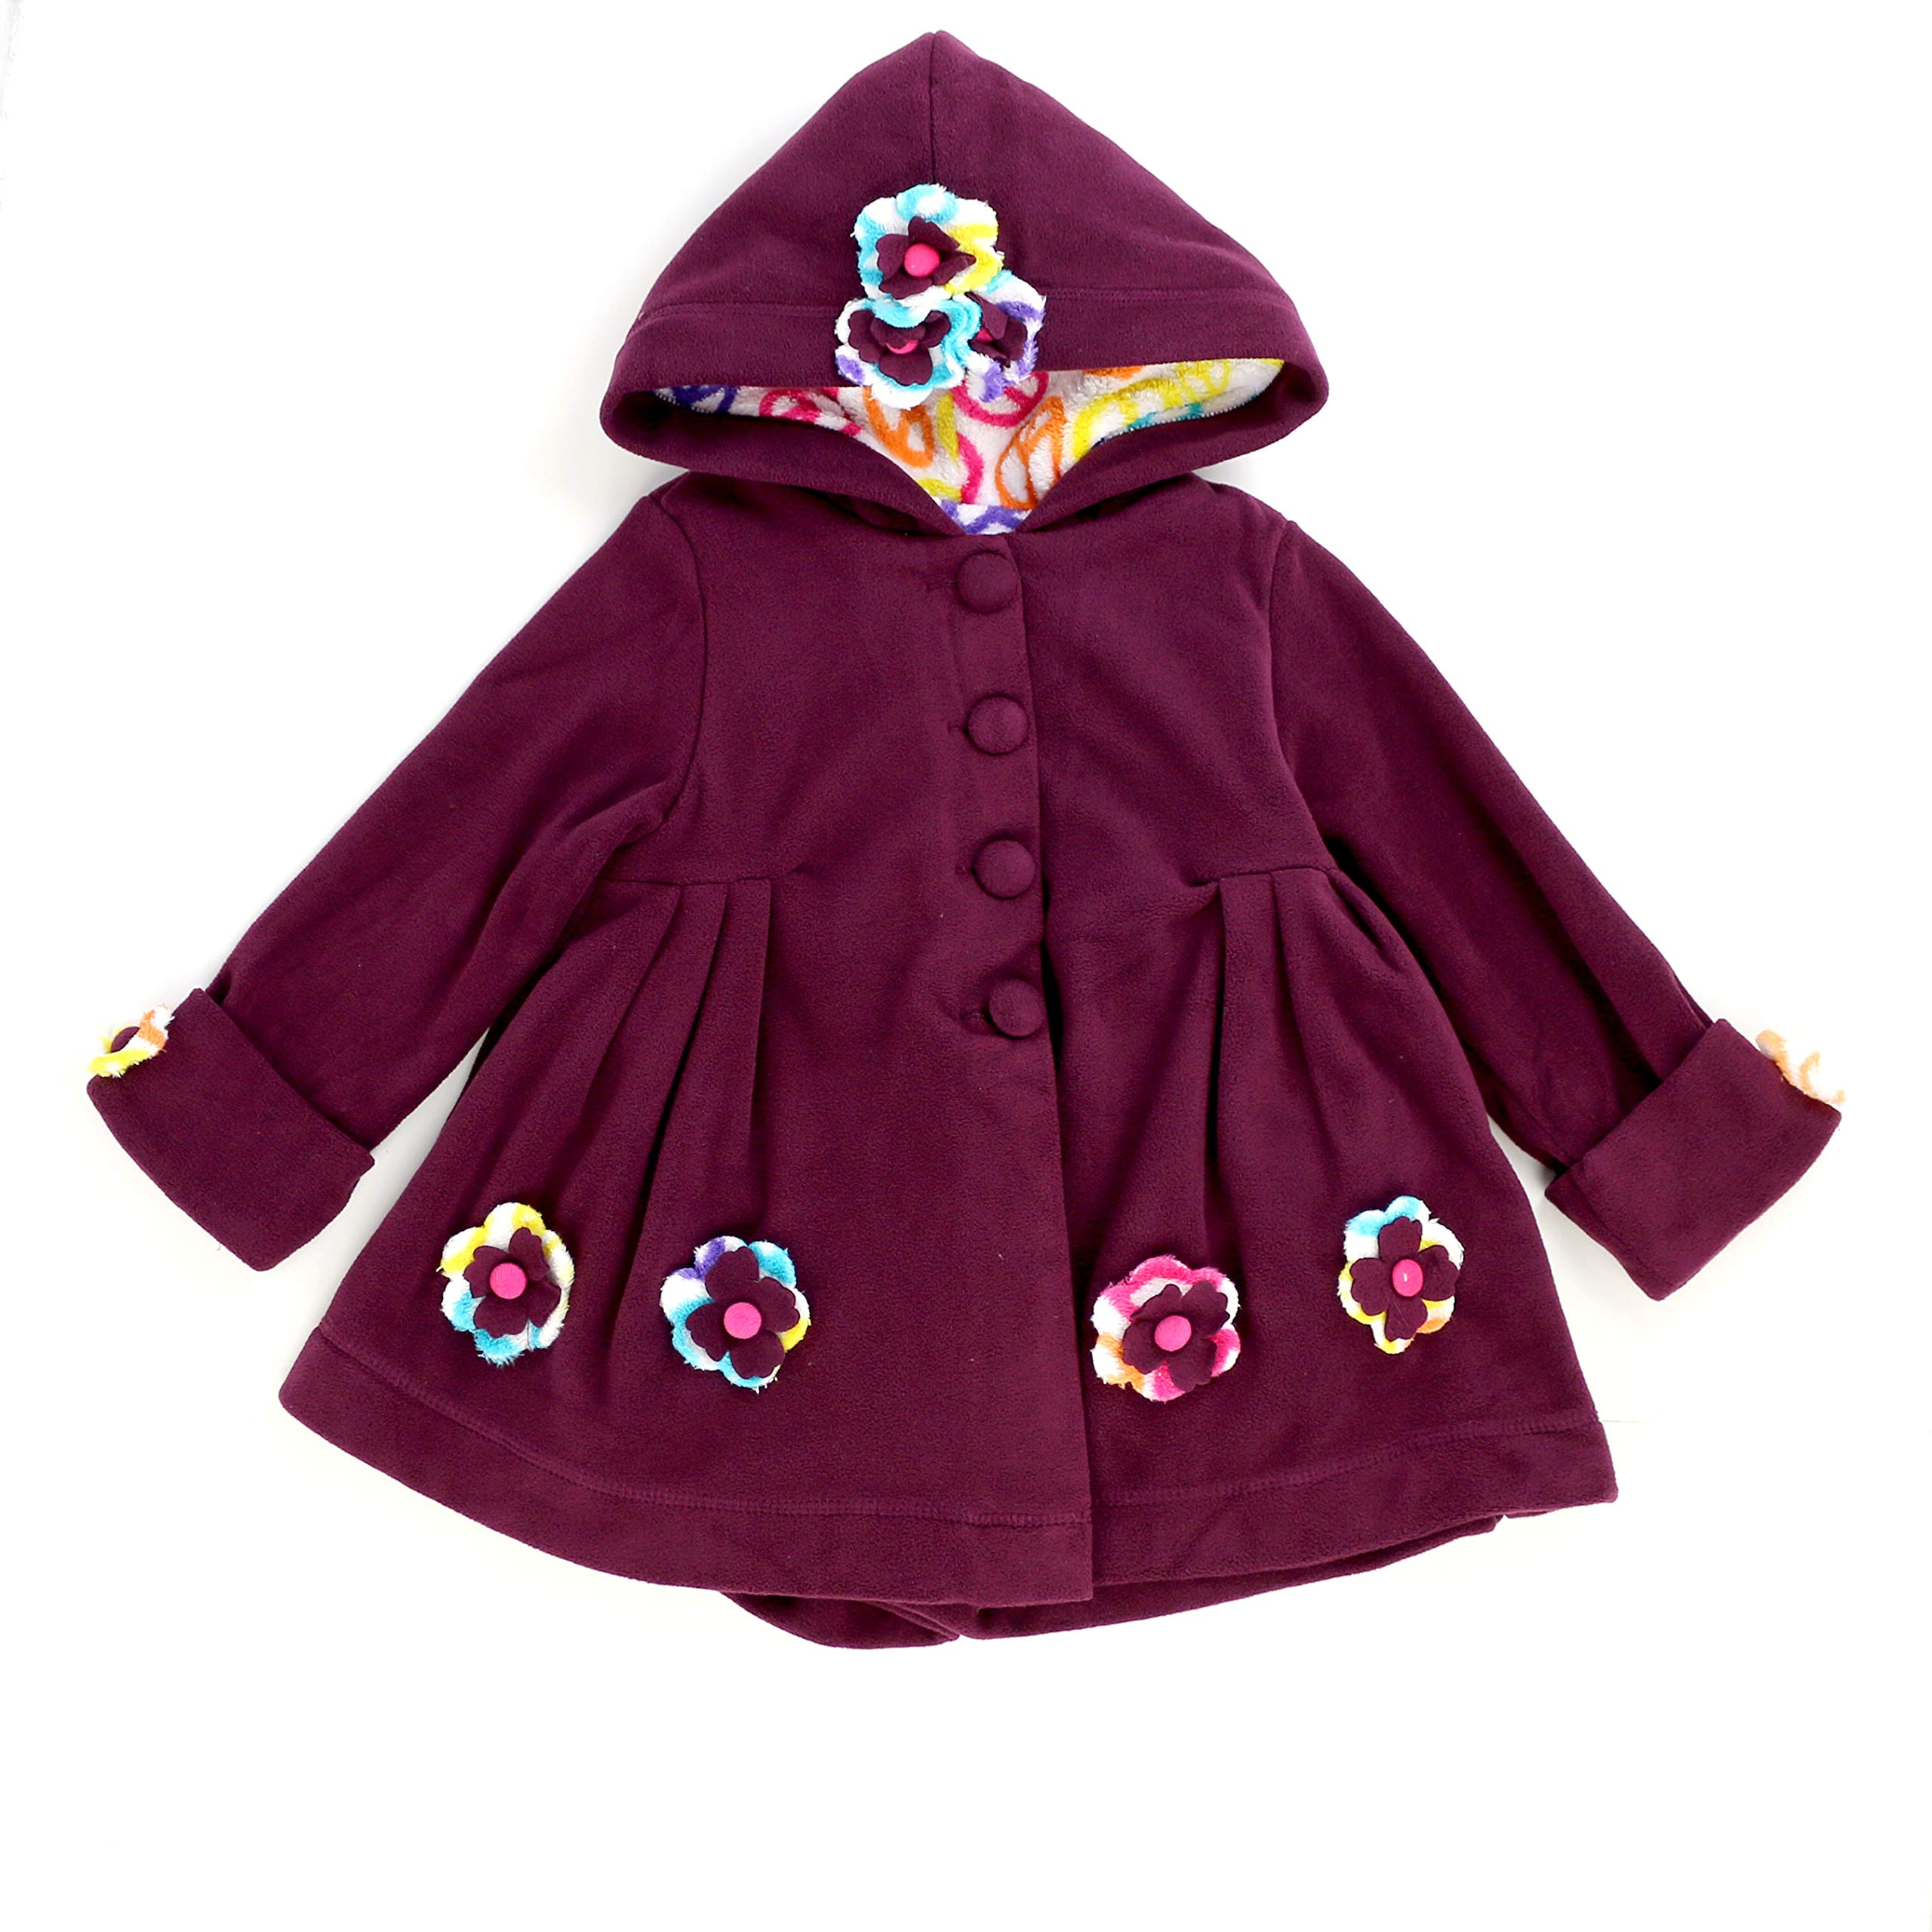 Maria Elena - Toddlers and Girls Carrie Peace and Love Hooded Fleece Jacket in Wild Orchid 7/8